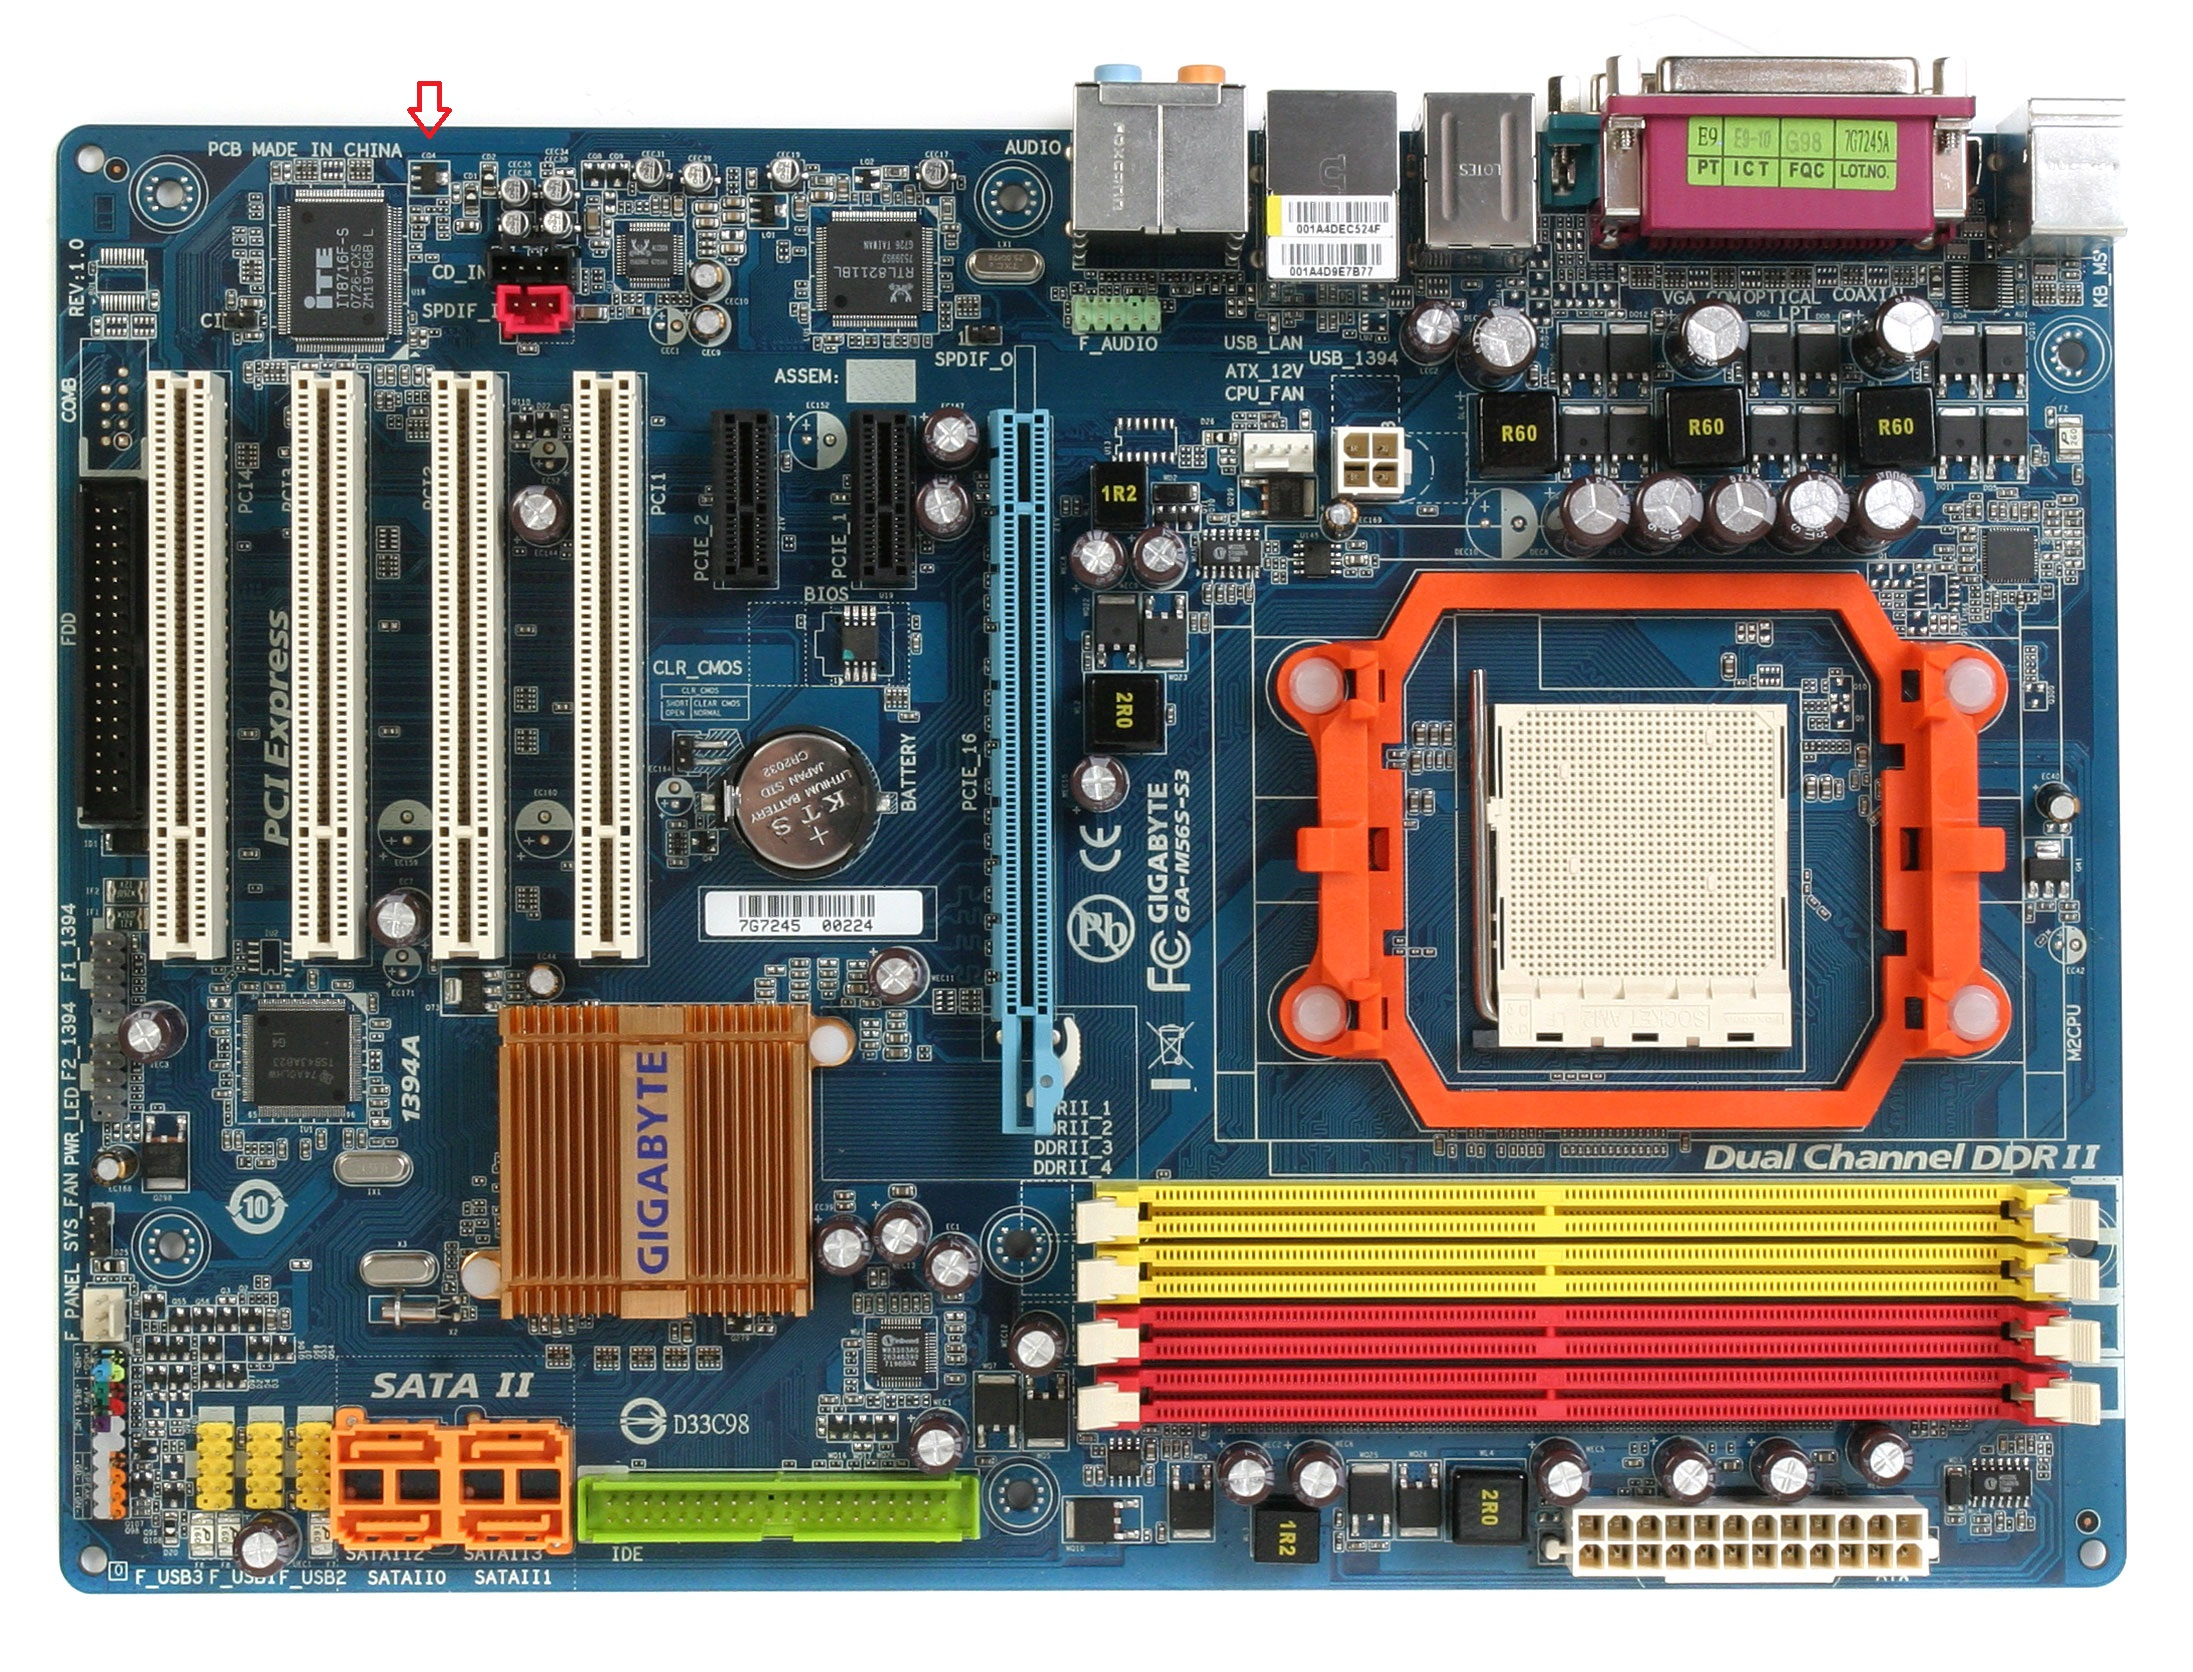 DRIVER FOR GIGABYTE GA-M56S-S3 CHIPSET